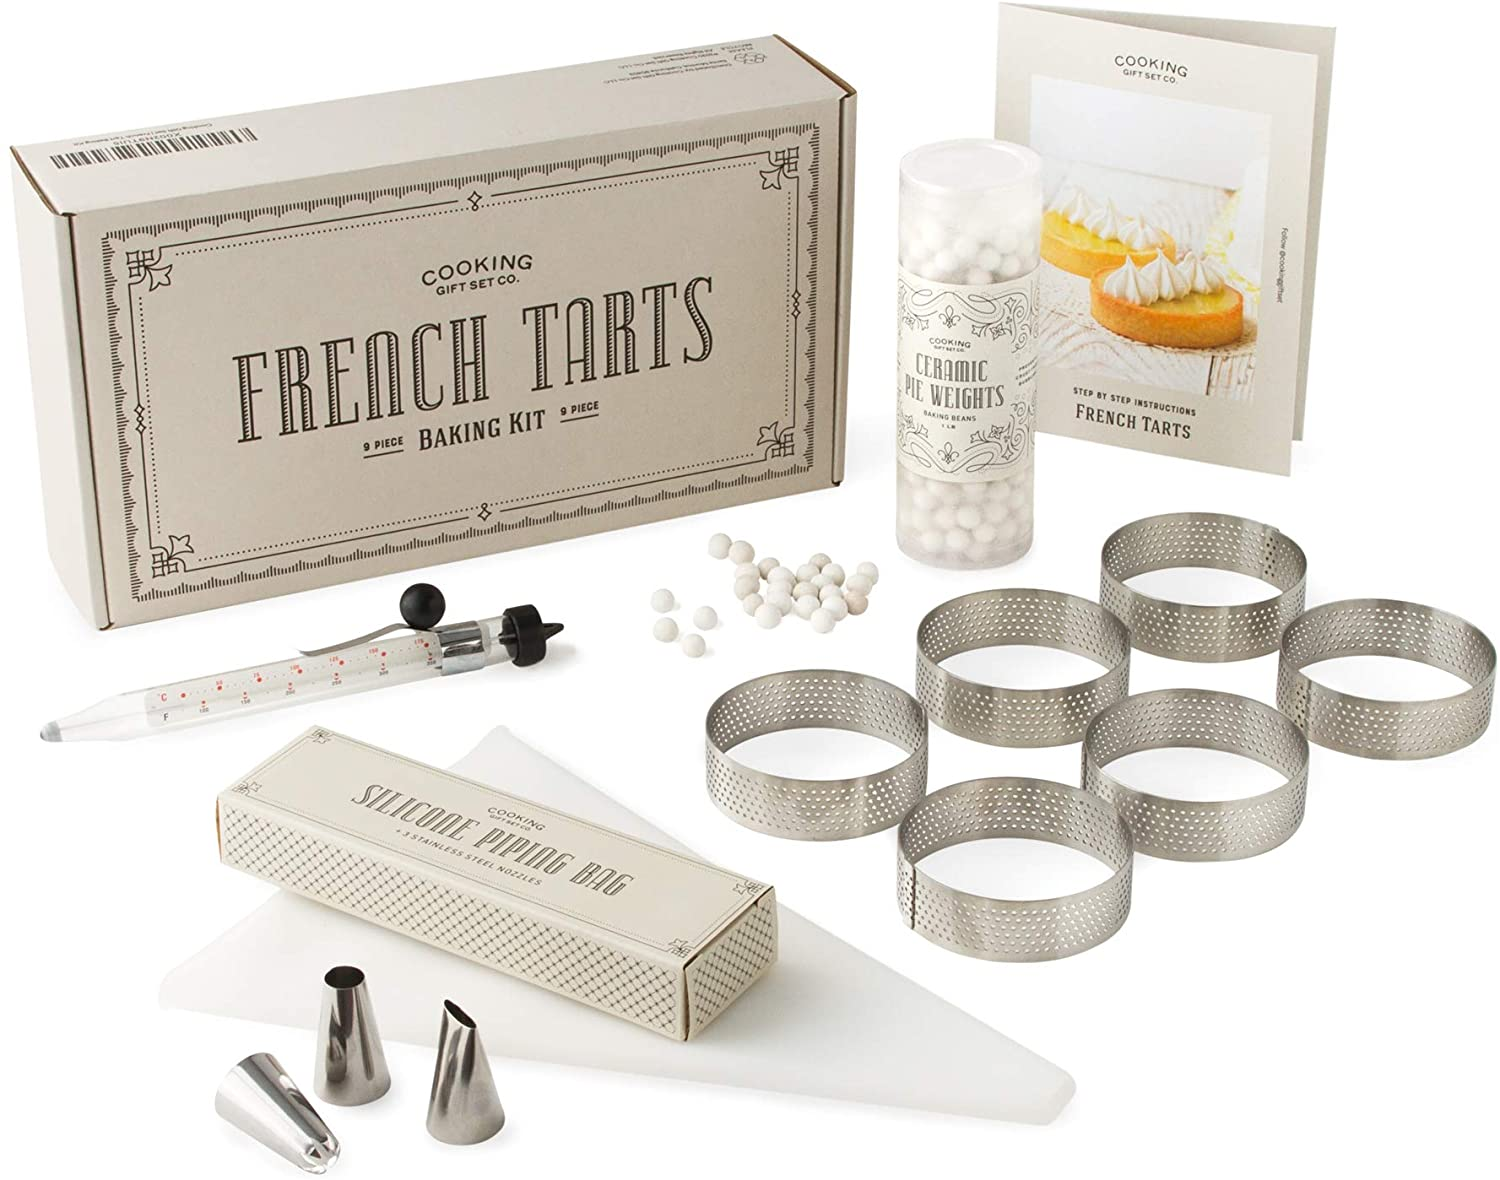 Cooking Gift Set Co.   French Tart Baking Kit   French Pastry Made Simple with Step by Step Instructions   Gifts for Bakers